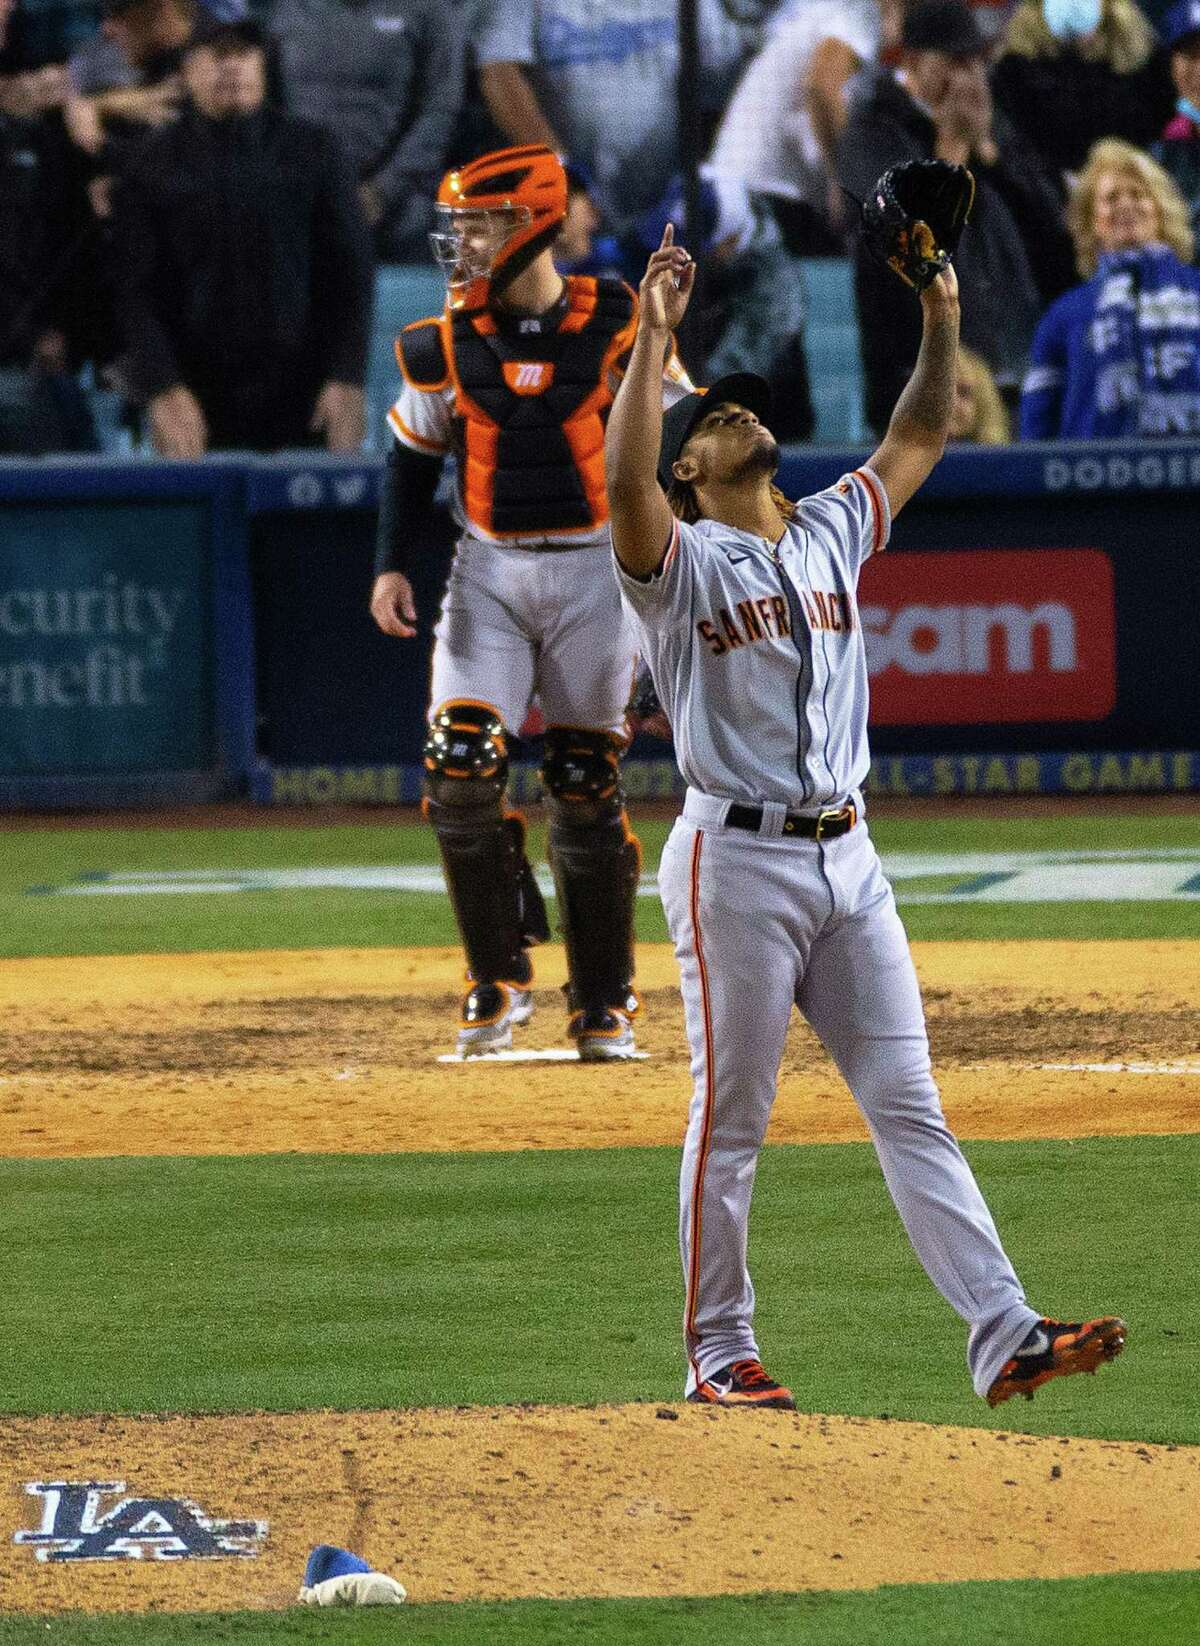 San Francisco Giants closer Camilo Doval (75) points skyward after after the San Francisco Giants defeated the Los Angeles Dodgers 1-0 in Game 3 of the National League Division Series at Dodger Stadium in Los Angeles, Calif. on Monday, Oct. 11, 2021.